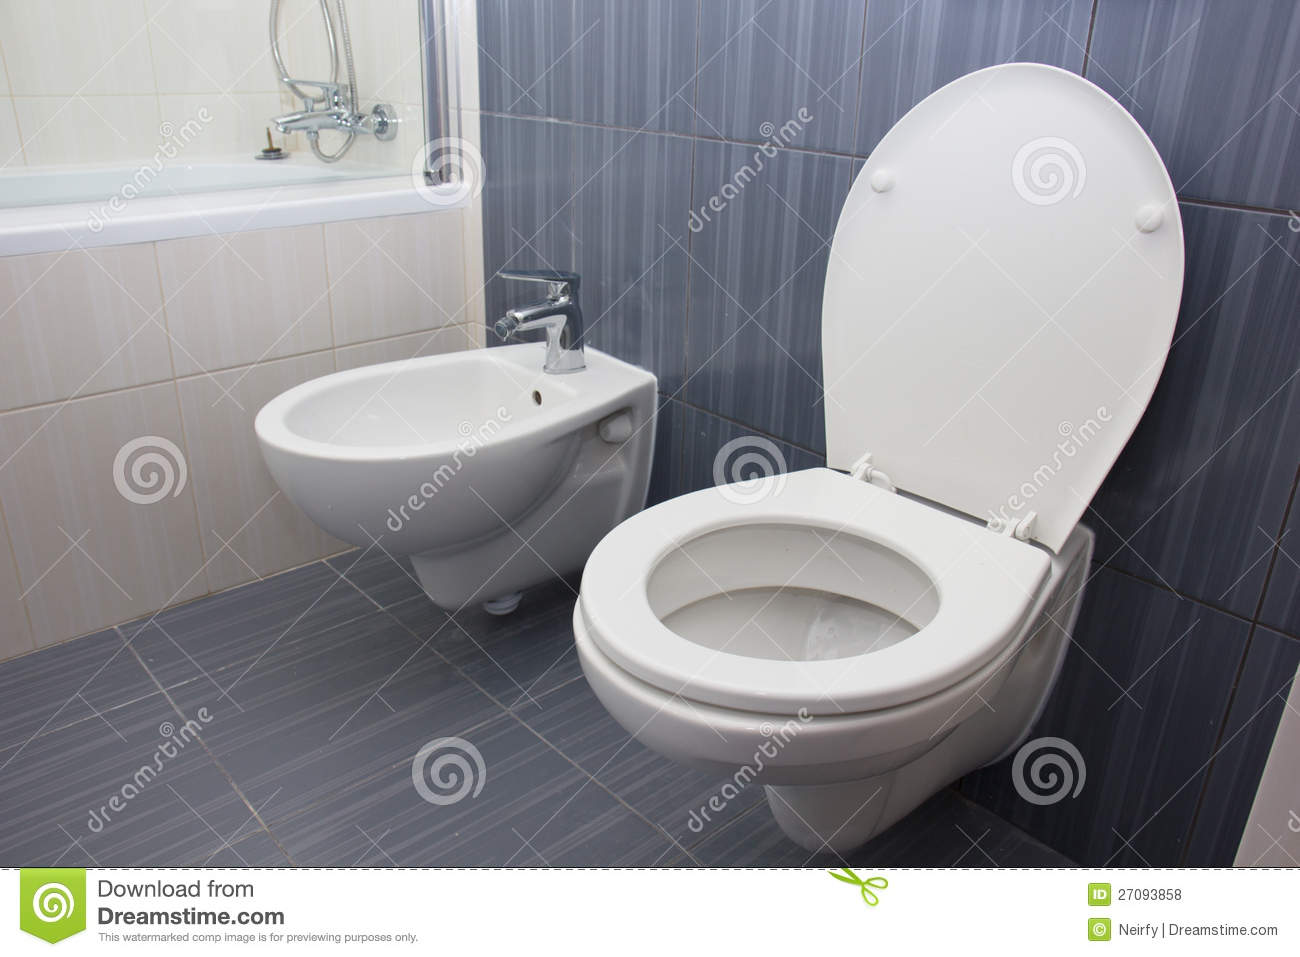 Toilet in the bathroom stock photo. Image of clean, architecture ...